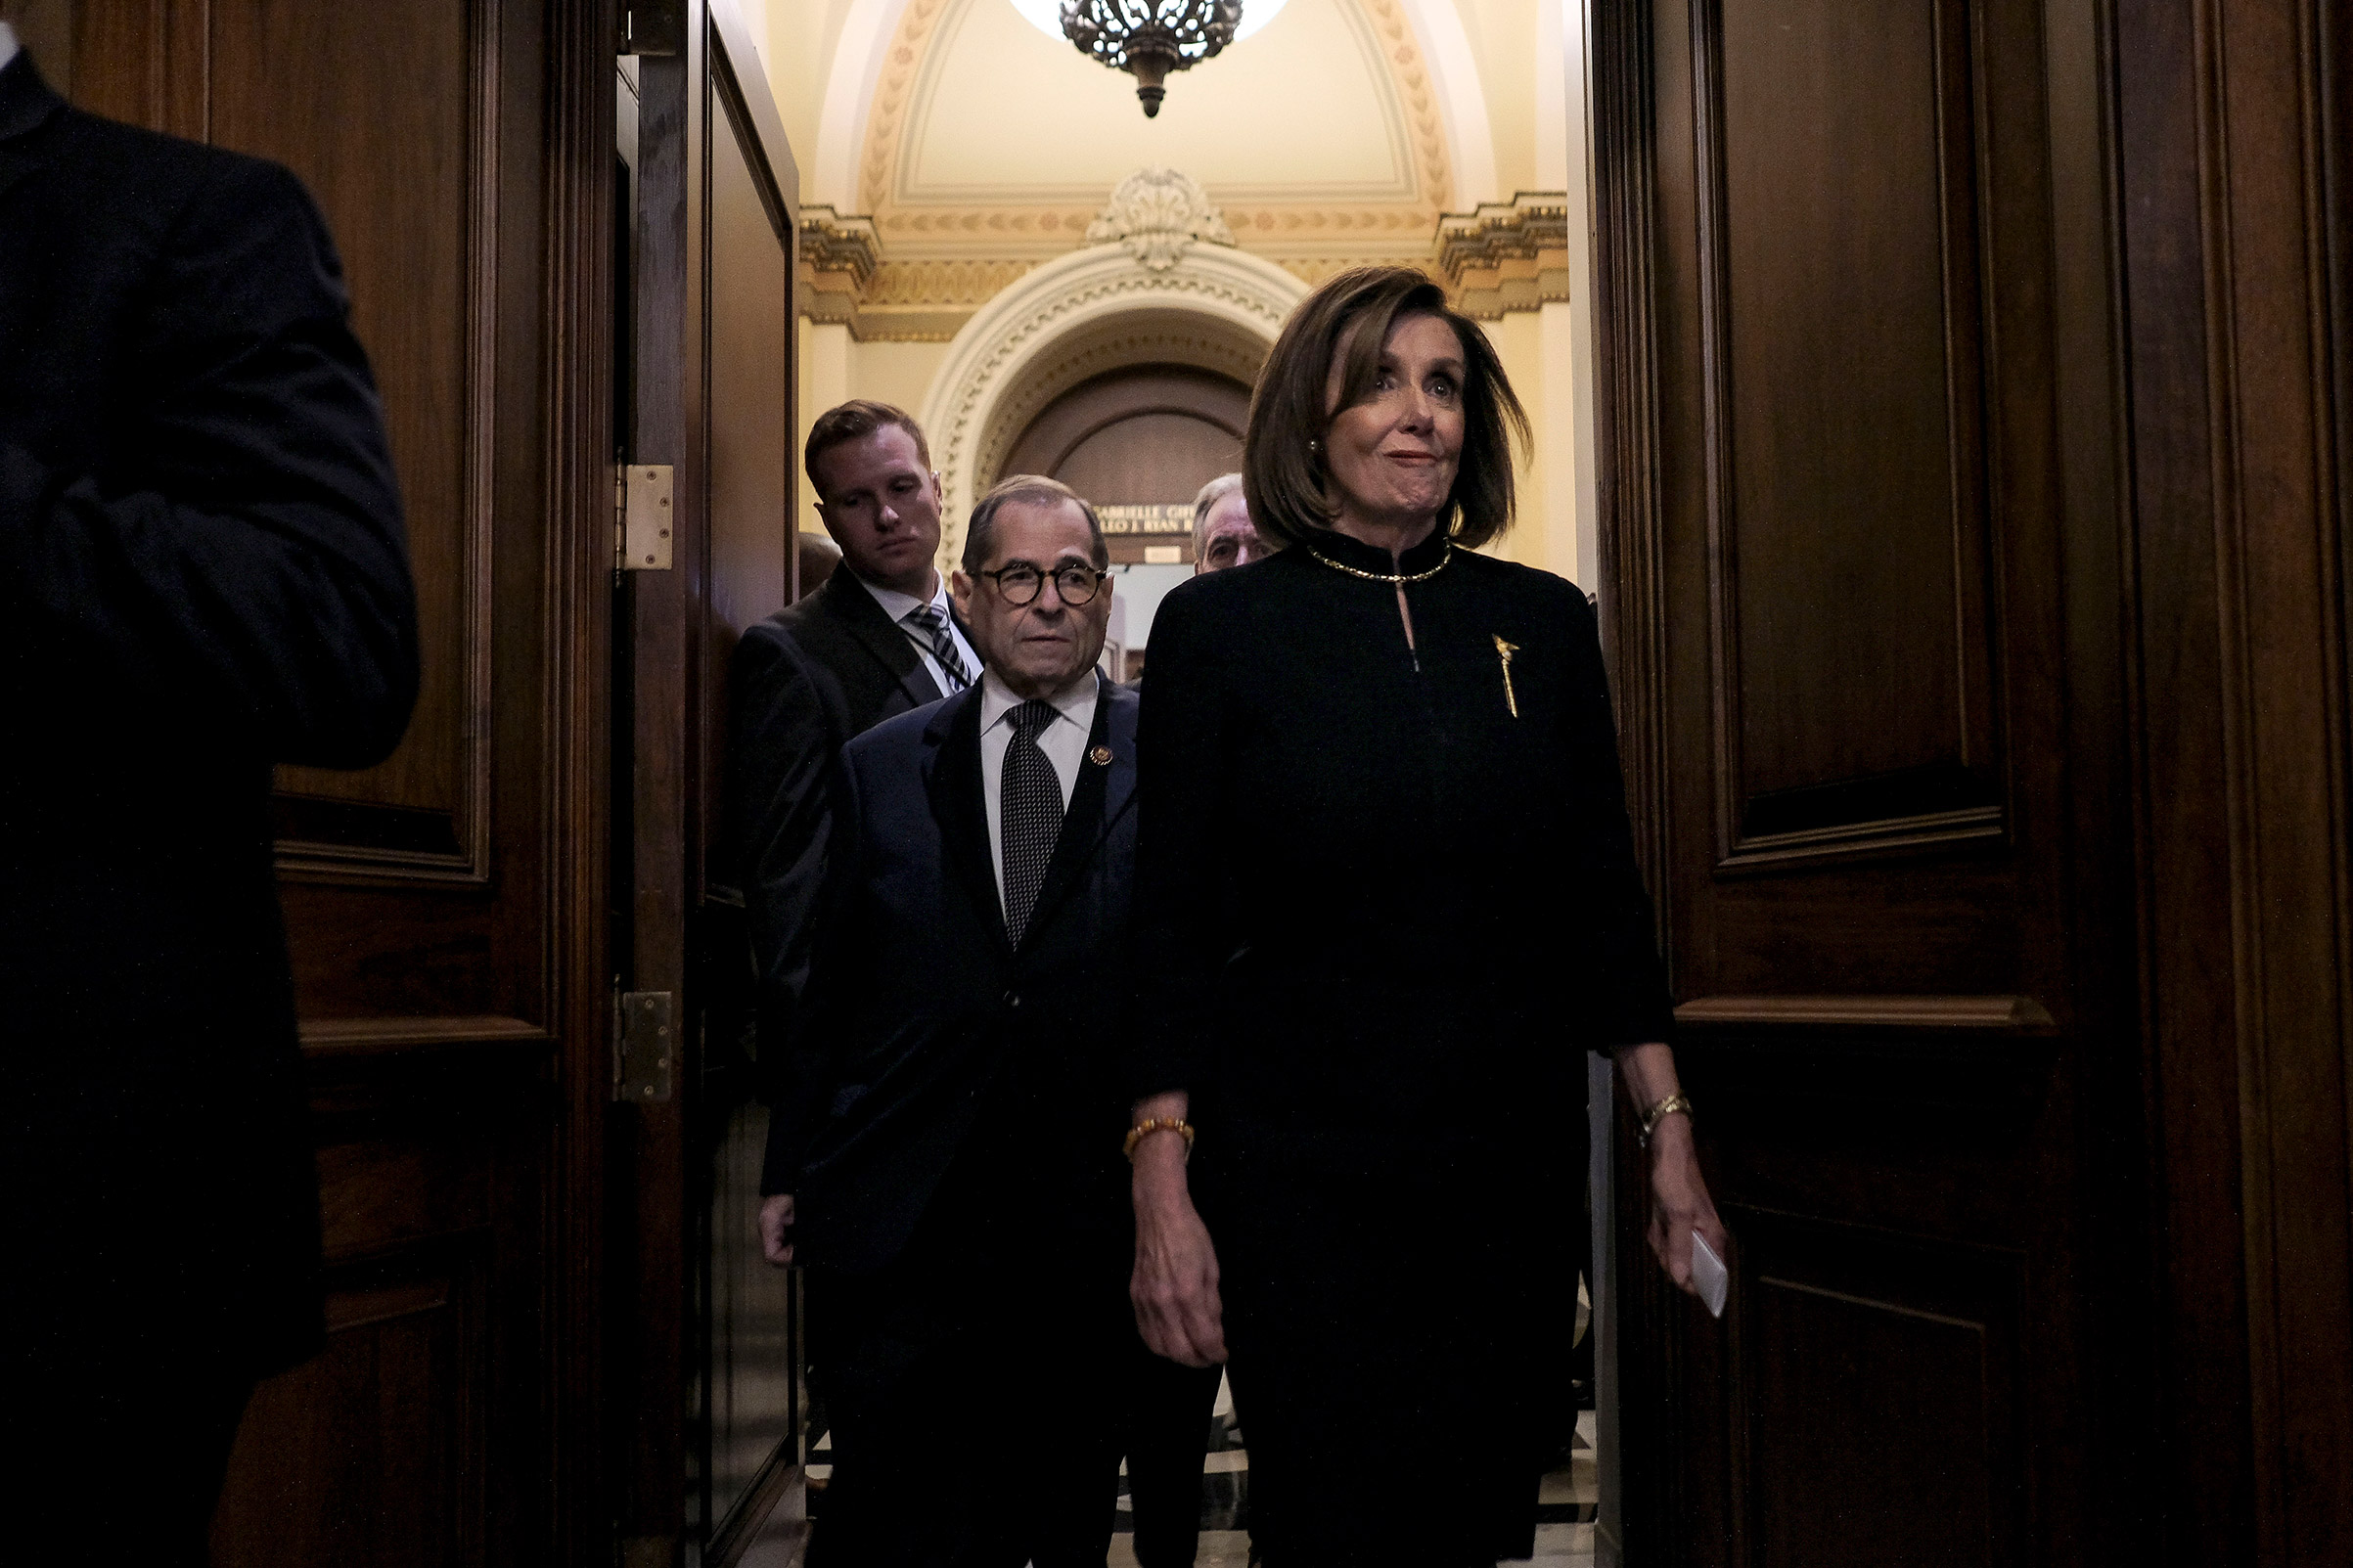 Speaker Nancy Pelosi (D-Calif.) and Judiciary Chairman Jerry Nadler (D-N.Y.) walk off the floor after the House vote on articles of impeachment at the Capitol in Washington, D.C. on Dec. 18, 2019.